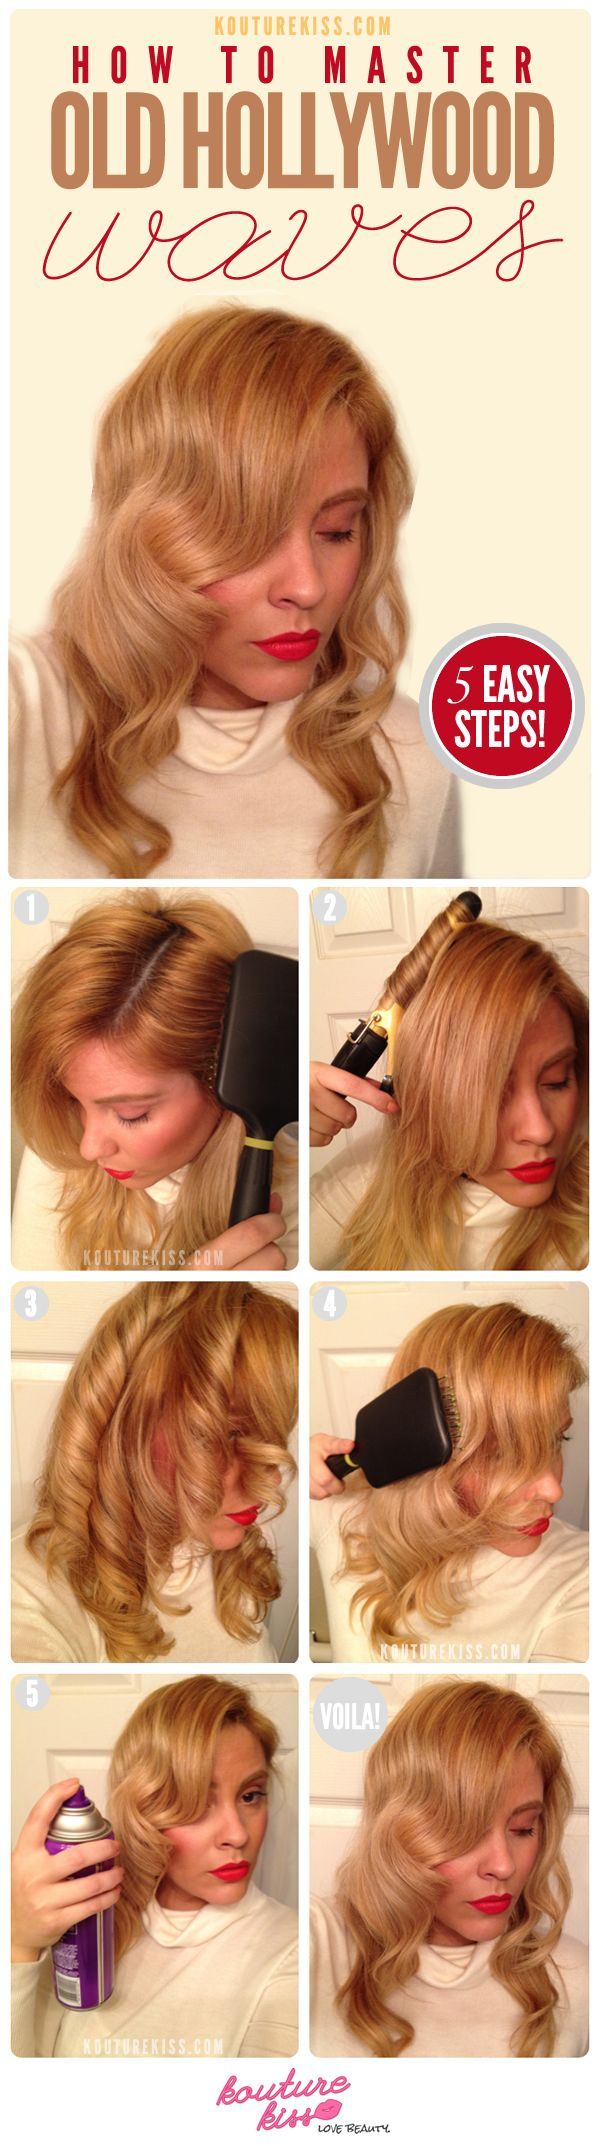 Best 25 easy vintage hairstyles ideas on pinterest tuck and 13 interesting tutorials for everyday hairstyles solutioingenieria Image collections